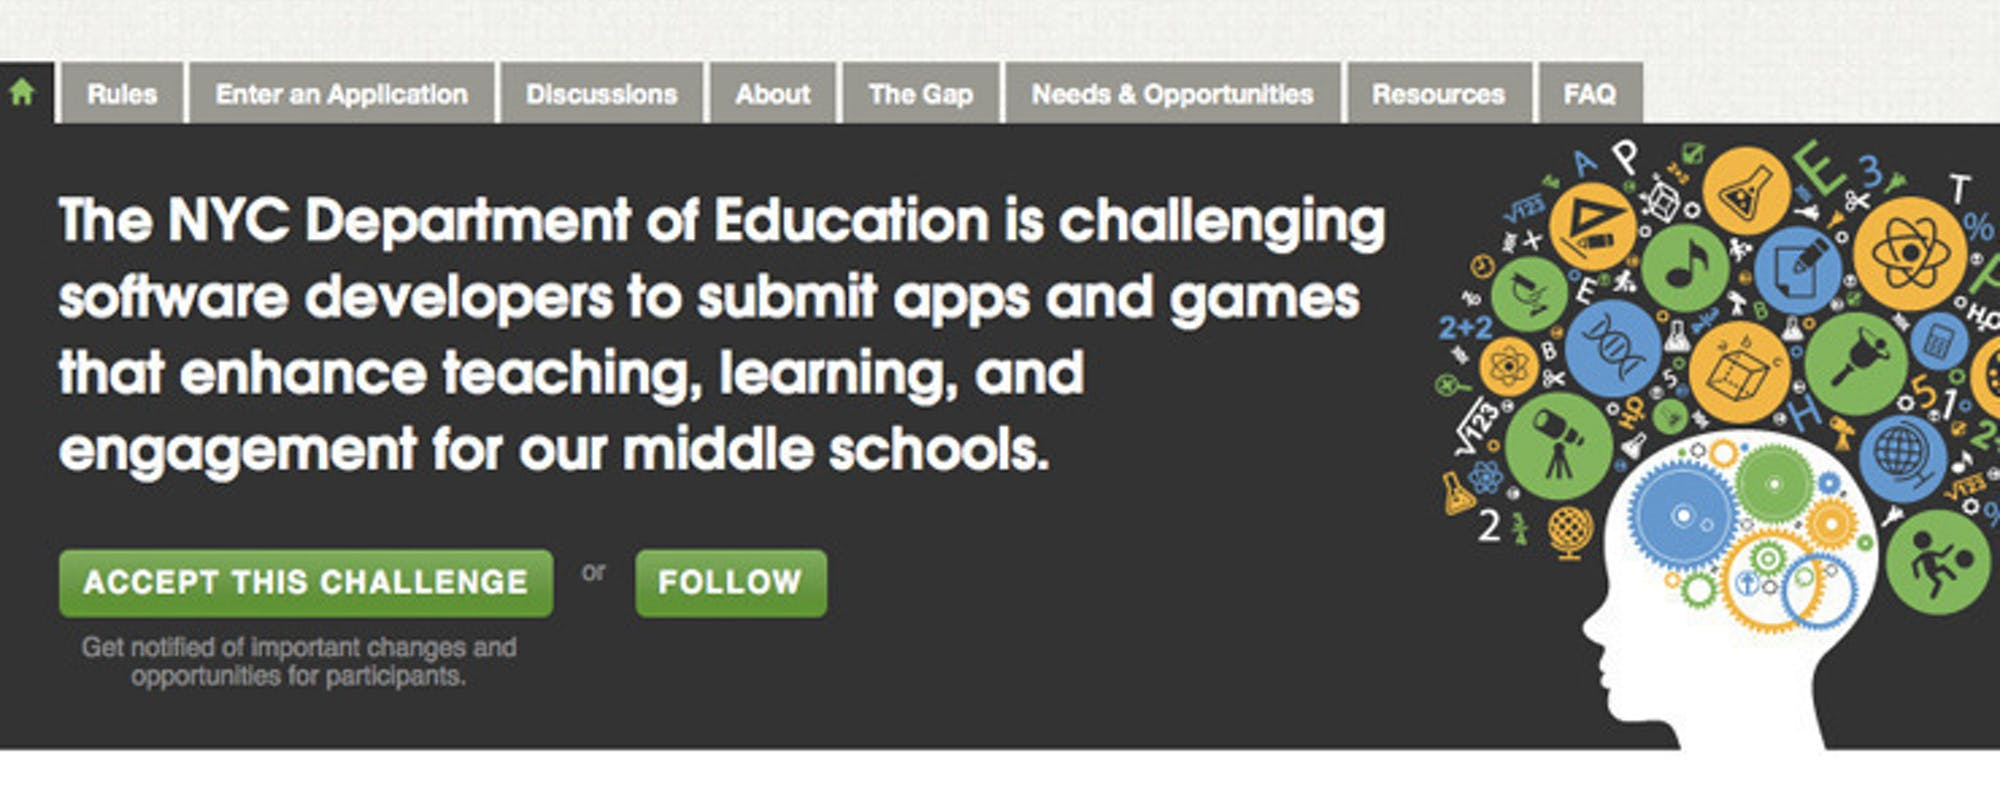 NYCDOE iZone Issues First Edtech Challenge